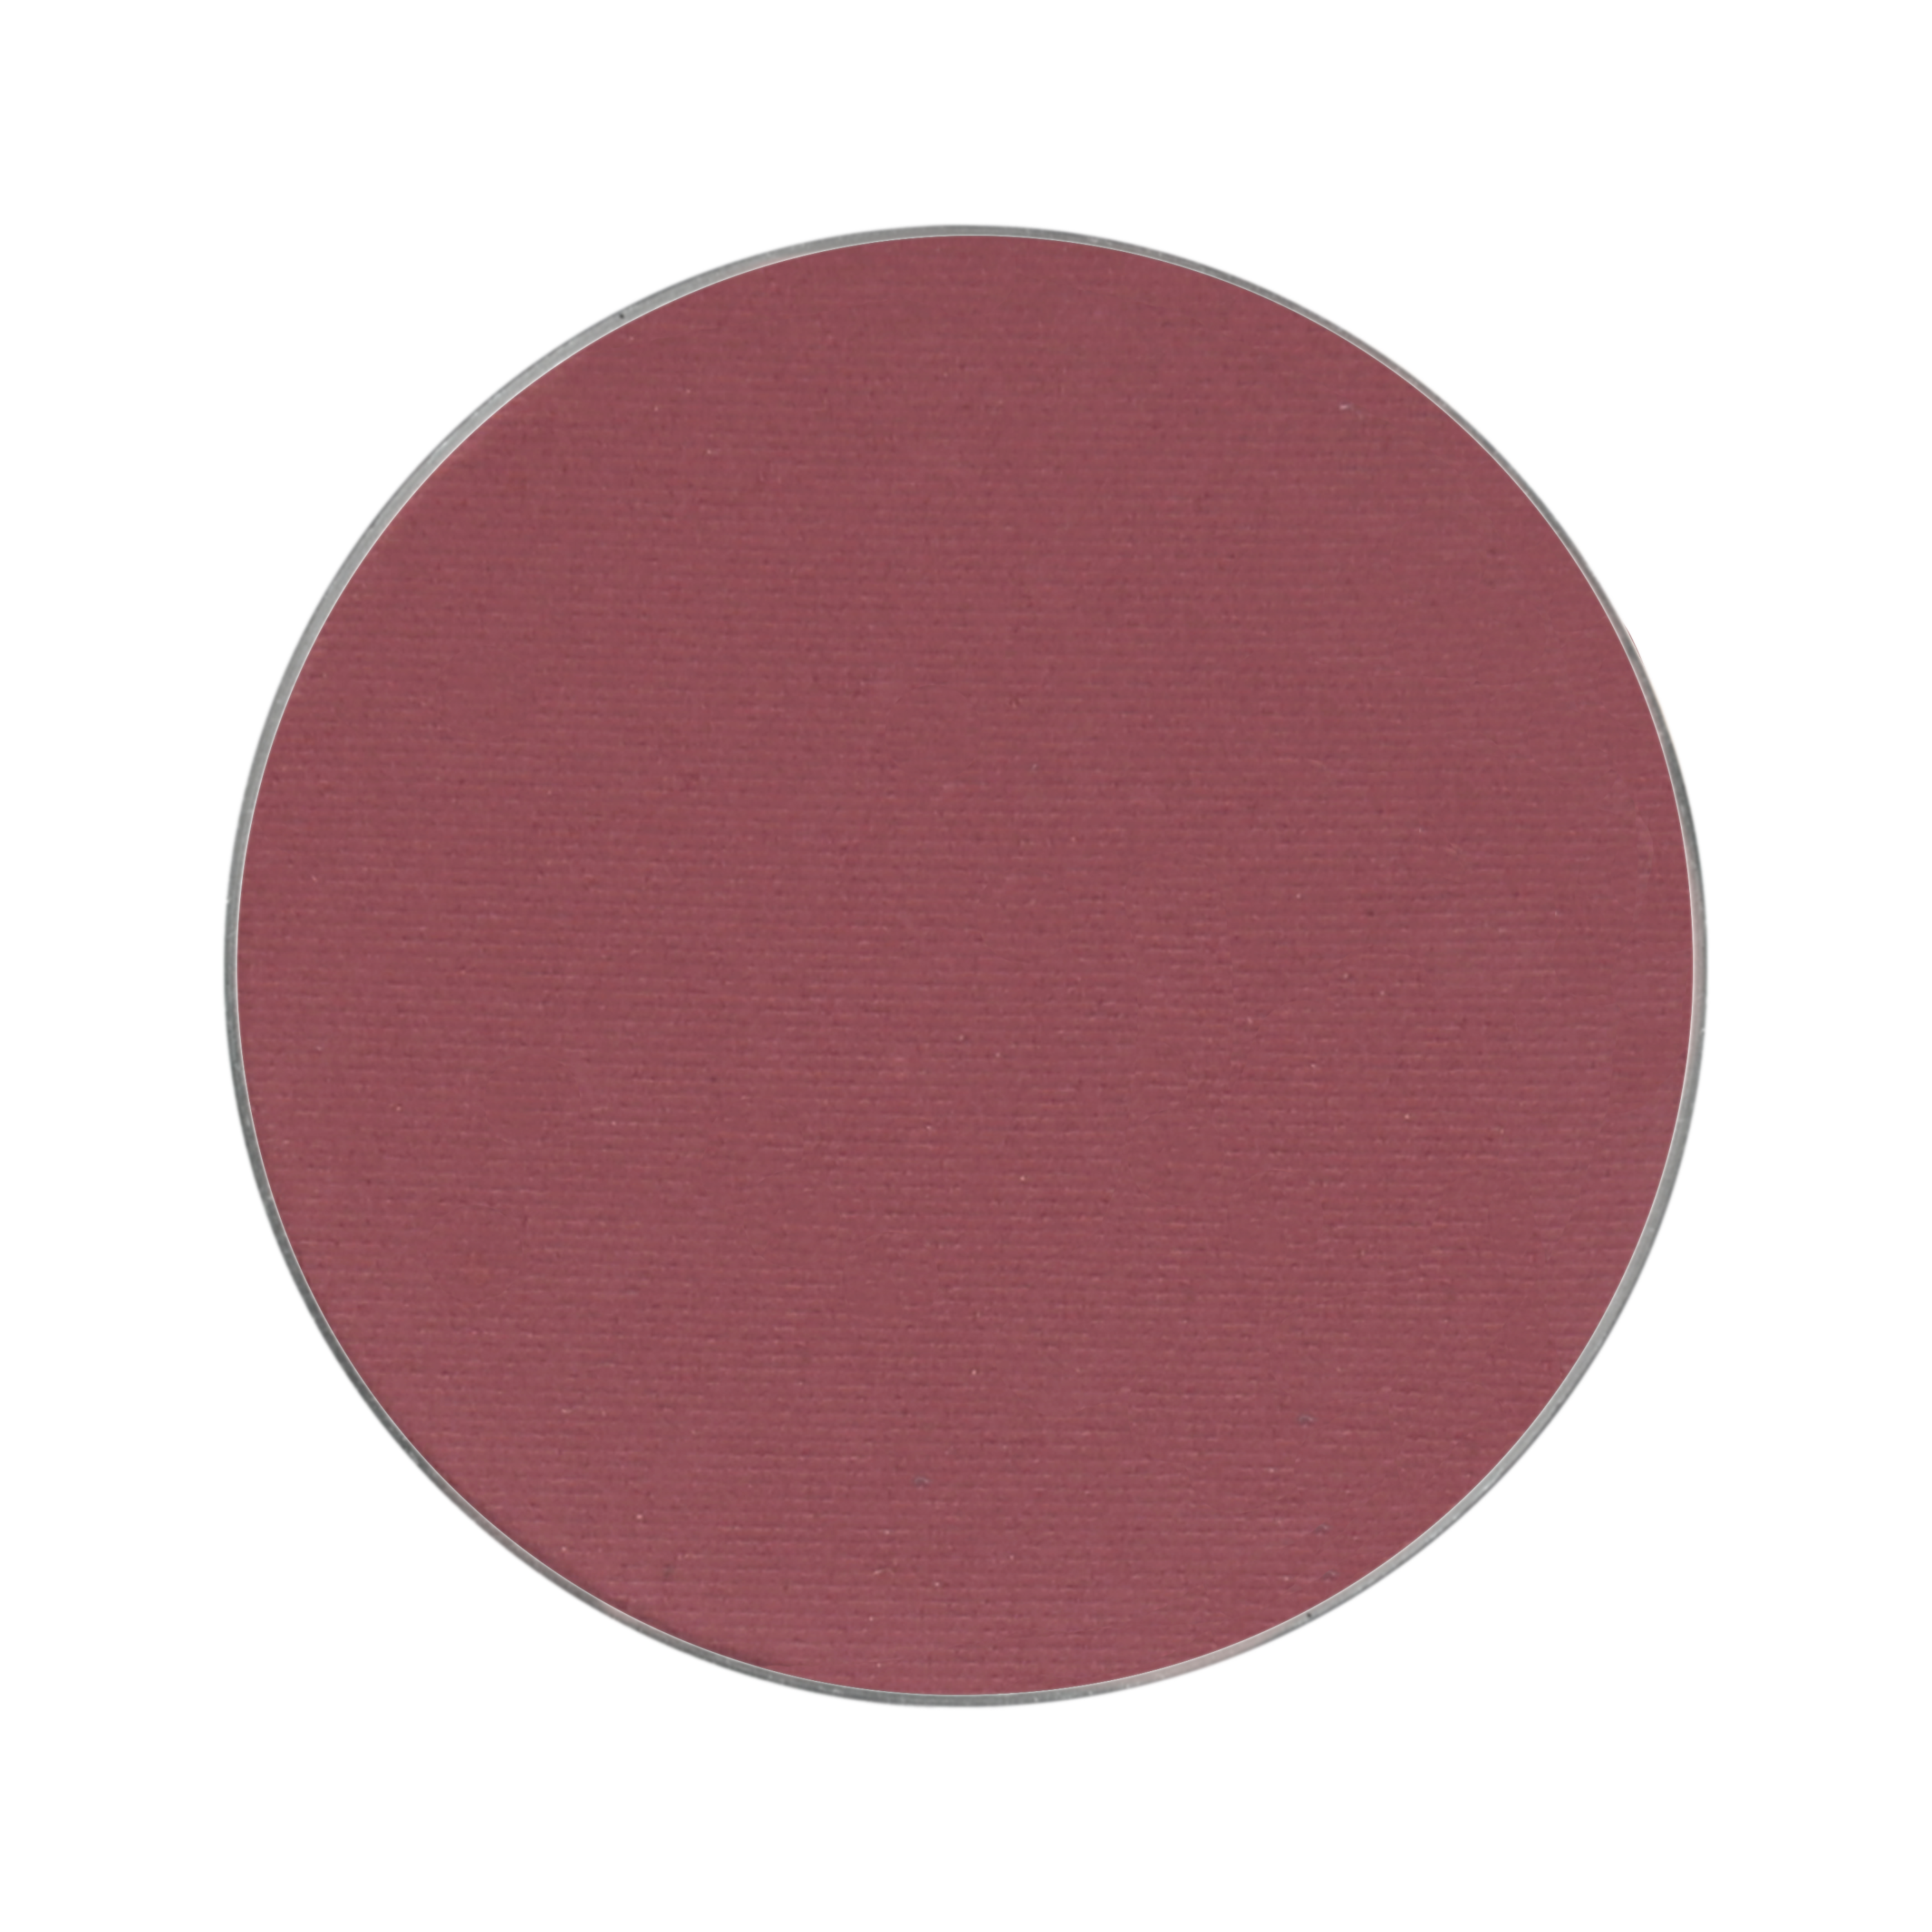 Blush Summer Magnetic Refill (1)